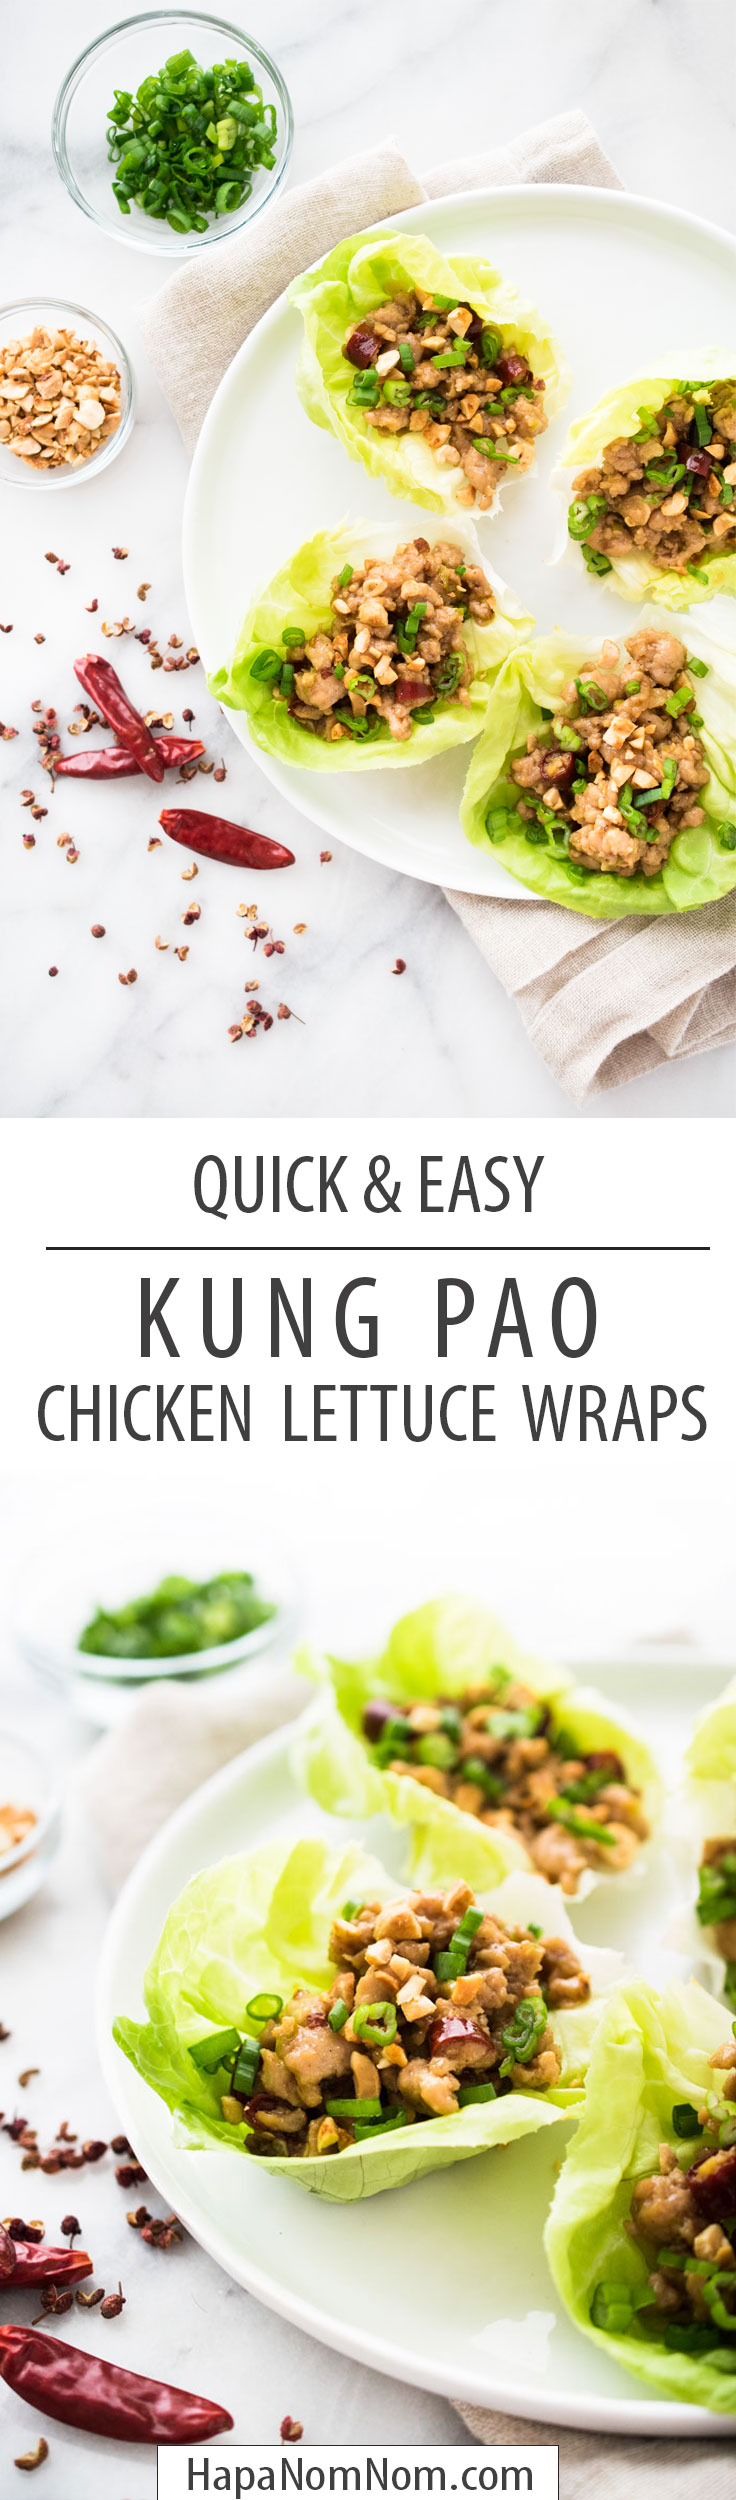 Kung Pao Lettuce Wraps - we like our chicken lettuce!